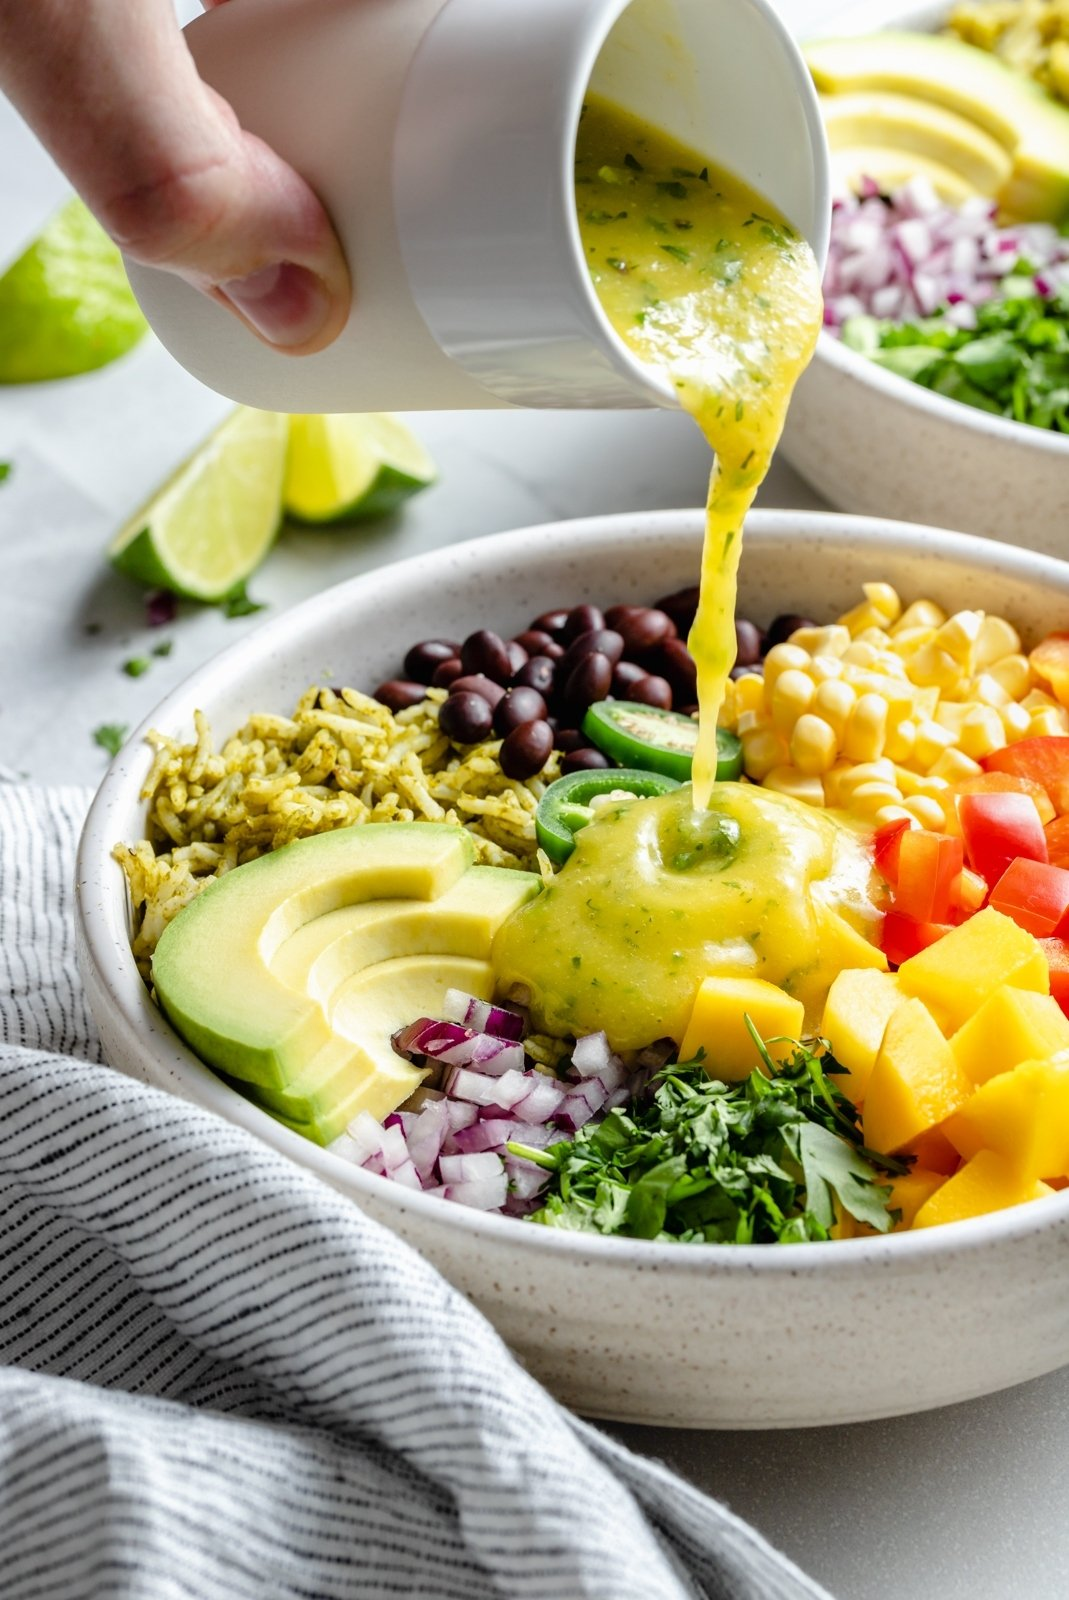 pouring dressing onto a green rice burrito bowl